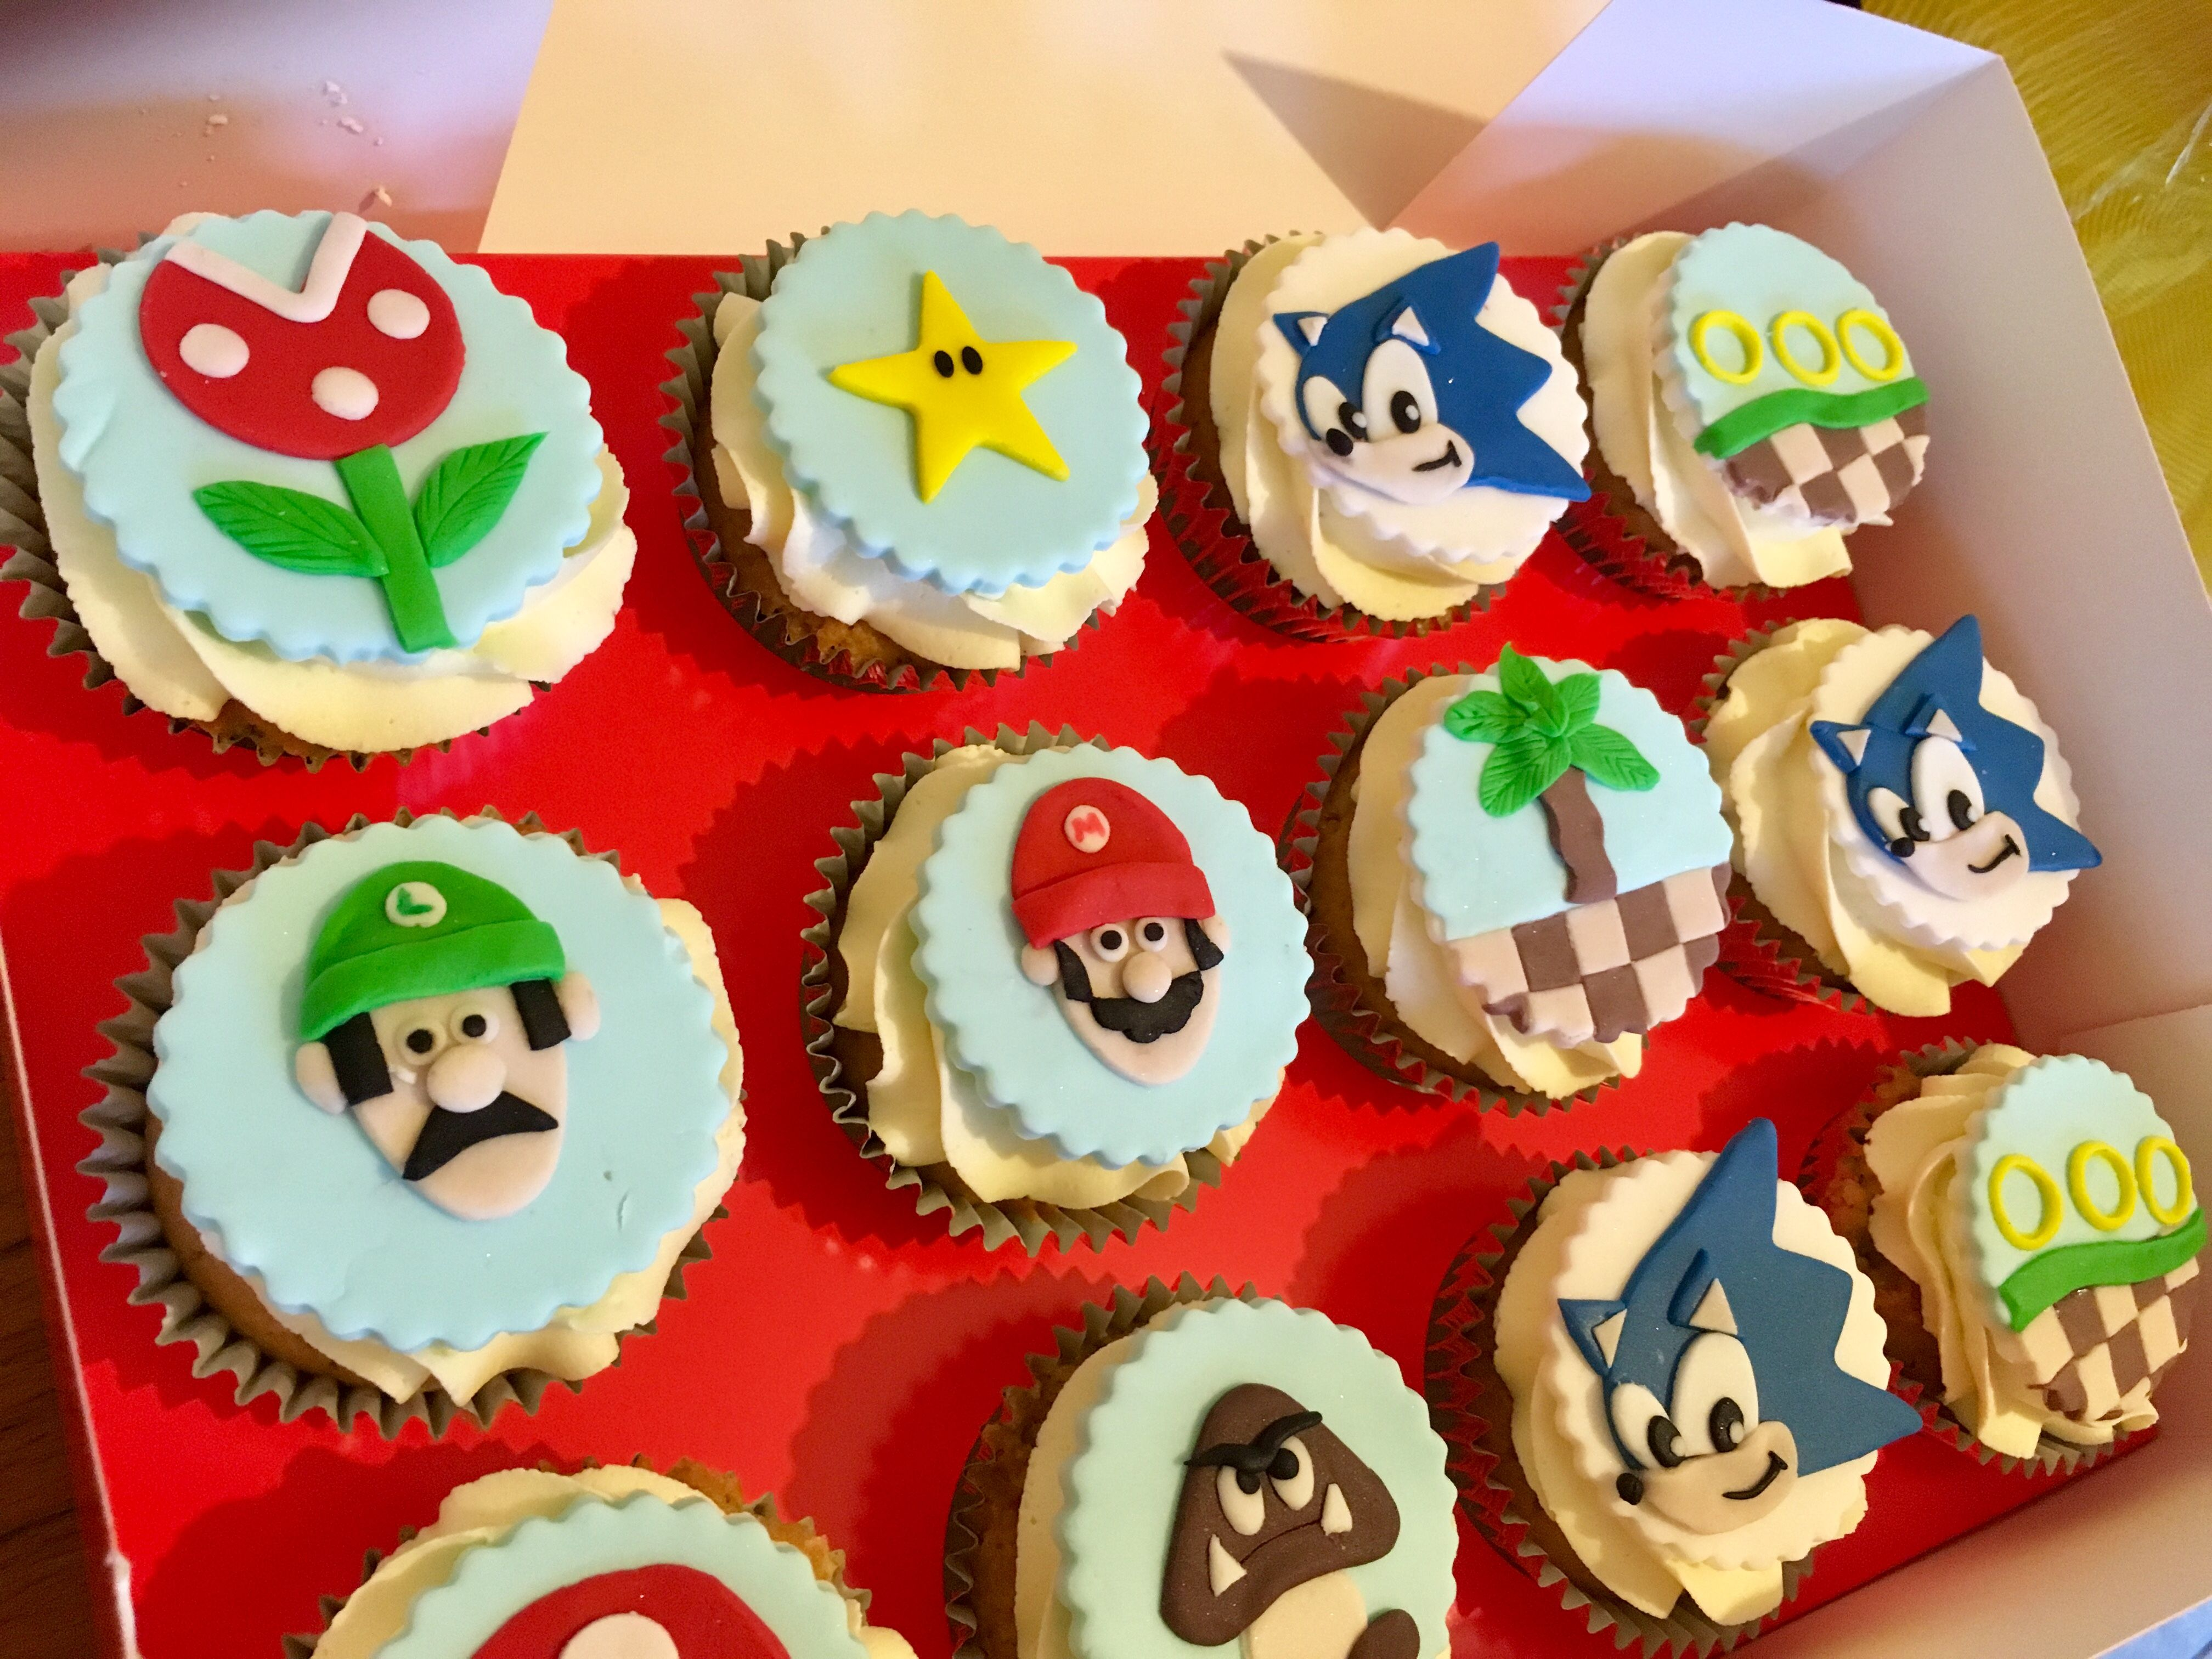 Super Mário and Sonic cupcakes